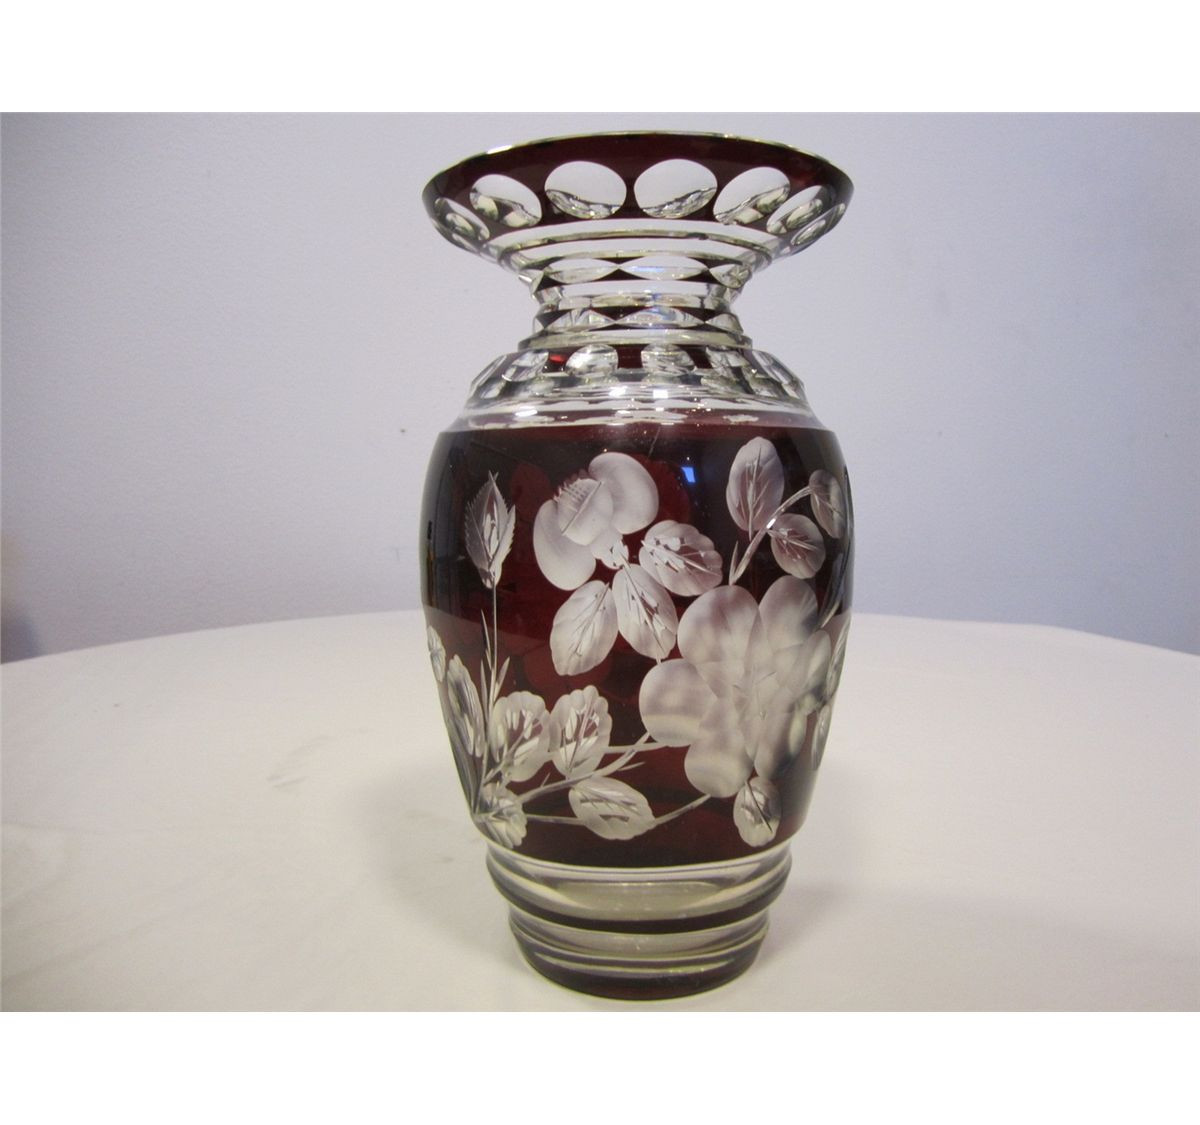 antique bohemian glass vase of antique bohemian czech deep ruby red cut to clear crystal vase 11 1 throughout image 2 antique bohemian czech deep ruby red cut to clear crystal vase 11 1